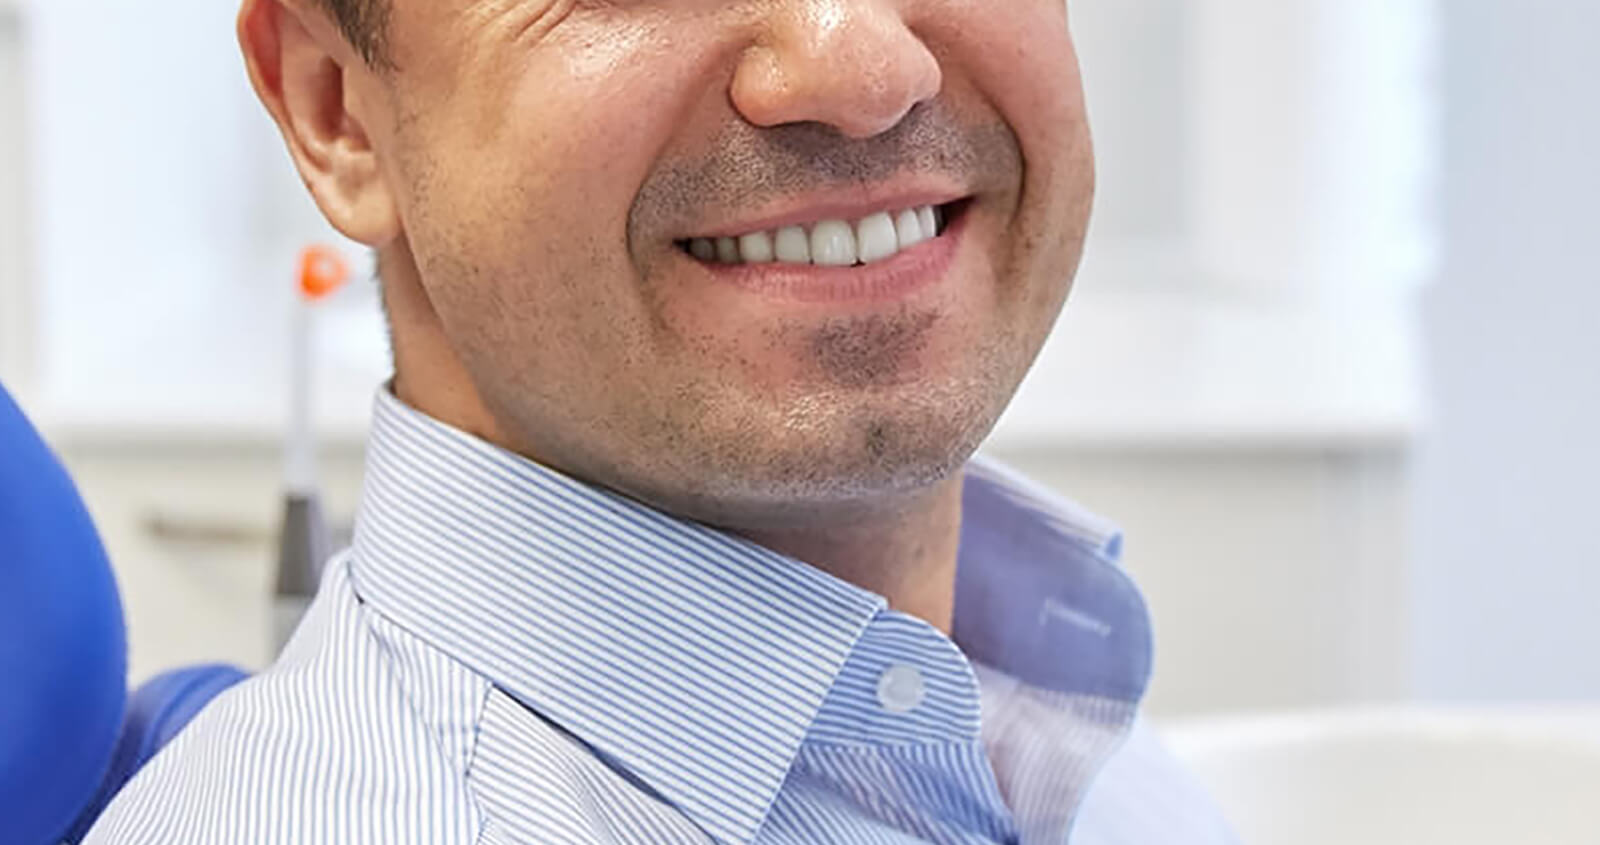 """You have come to the right place for lasting pain relief from a """"TMJ dentist near me in Overland Park, KS."""""""